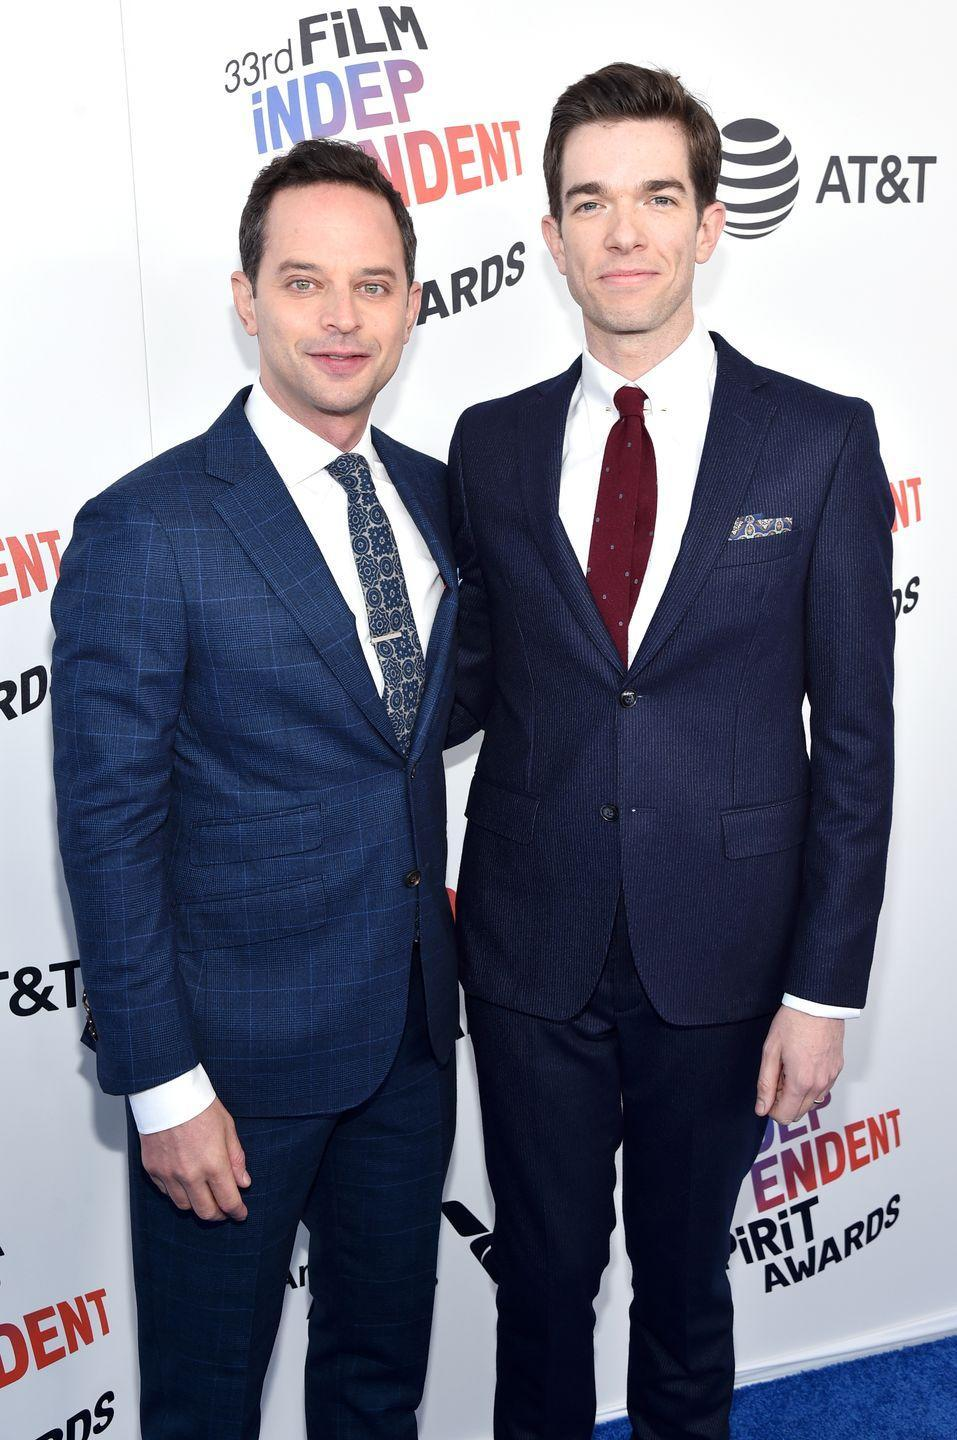 "<p>Fellow funnymen Nick Kroll and John Mulaney linked up while attending Georgetown University in 2000; Kroll was the upperclassman responsible for recruiting Mulaney into the hallowed Georgetown Improv Association. </p><p>When Kroll met Mulraney, he just knew that there was something special about him. ""Honestly when I met him, I was like, this guy's so funny, I'm going to hold on tight,"" Kroll told <em><a href=""https://www.washingtonpost.com/news/arts-and-entertainment/wp/2017/11/01/a-failed-sitcom-could-end-your-career-for-john-mulaney-it-was-just-the-beginning/"" rel=""nofollow noopener"" target=""_blank"" data-ylk=""slk:The Washington Post"" class=""link rapid-noclick-resp"">The Washington Post</a></em>. ""I've sufficiently done that for a long time,"" Kroll says. Their friendship has since grown into what many would describe as a lifetime professional partnership, leading the comedians to work together on numerous projects such as the beloved ""Oh, Hello Show"" on Kroll's Comedy Central series (which later turned into a Broadway show) as well as Netflix's adult animated comedy <em>Big Mouth</em>. </p>"